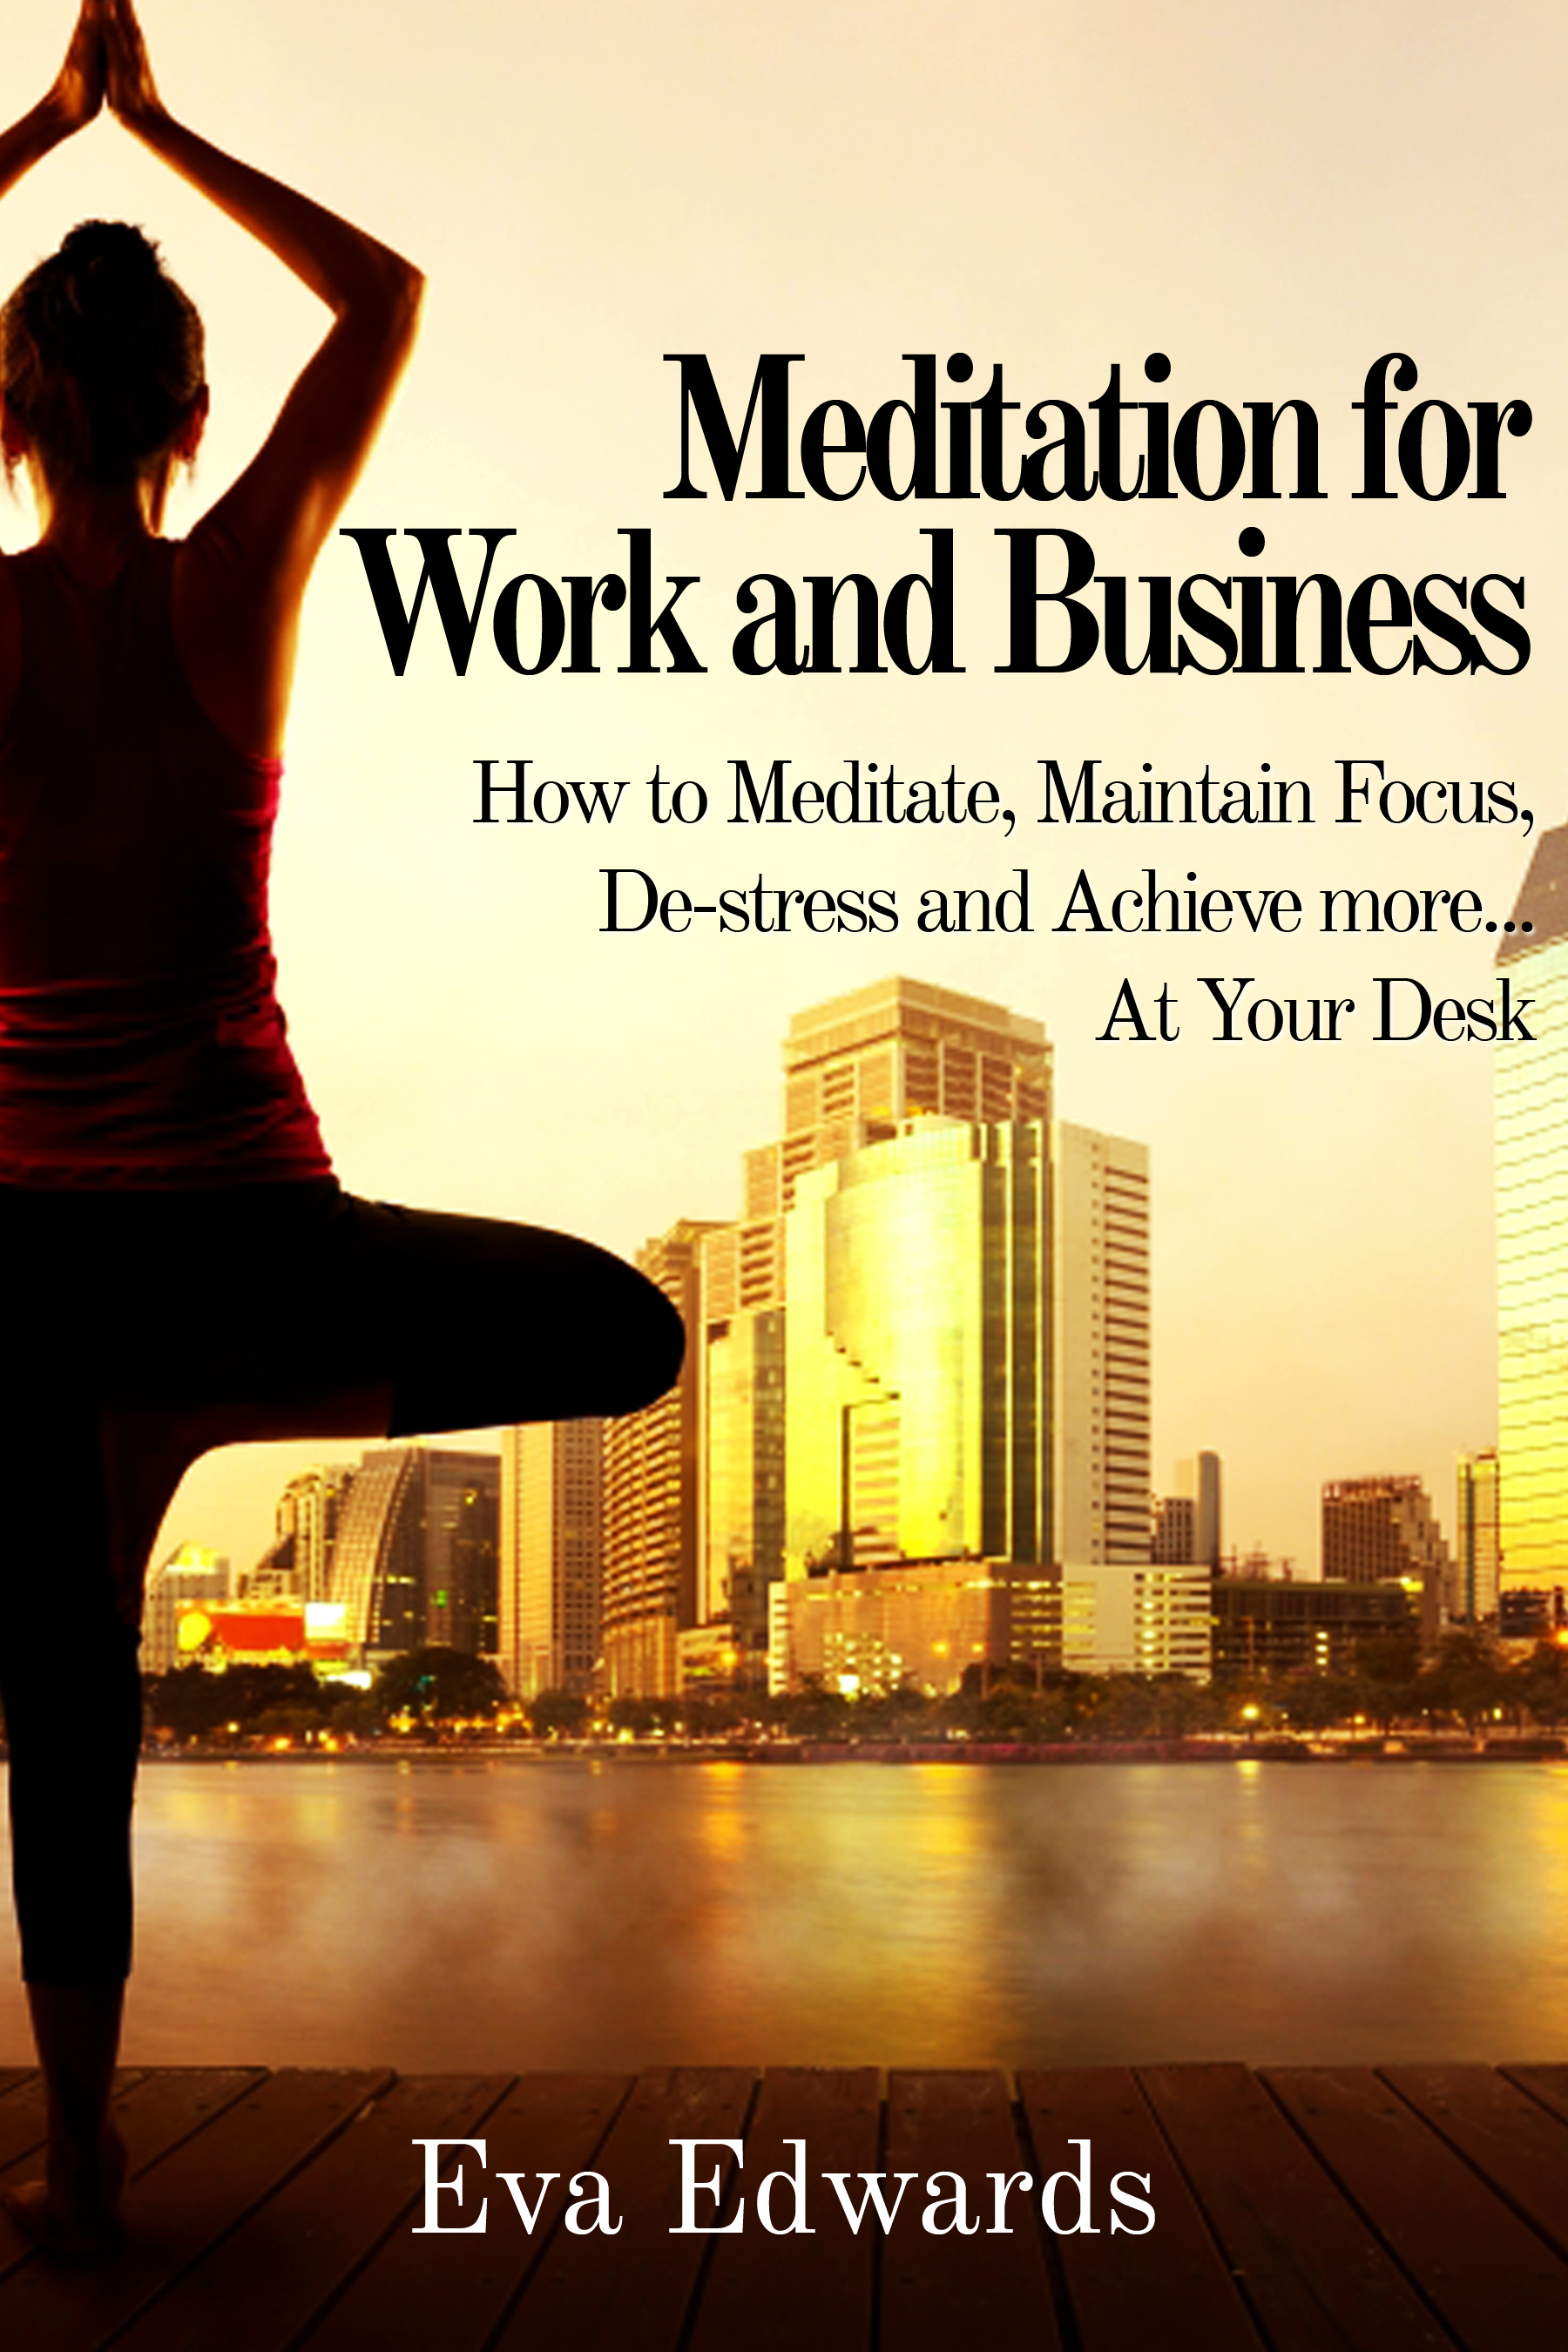 Meditation for Work and Business Cover by Eva Edwards